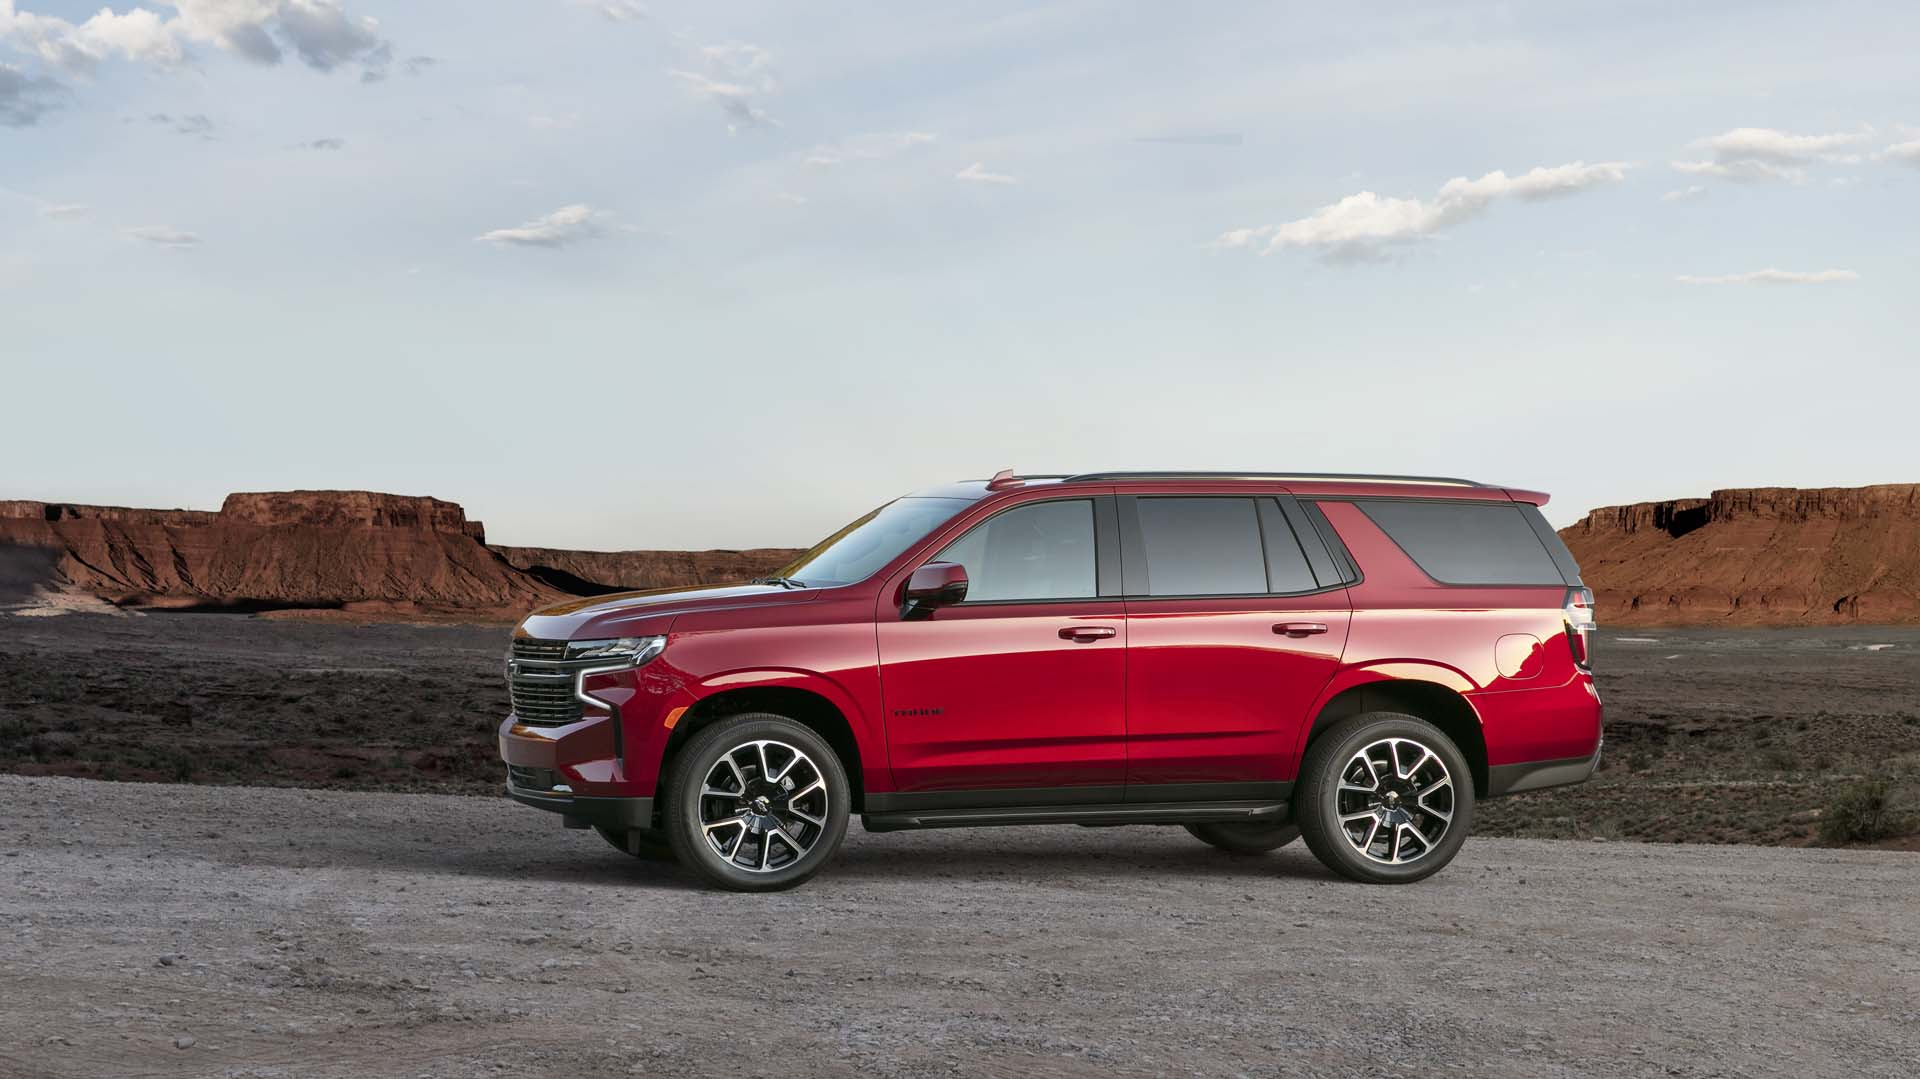 2021 Chevrolet Tahoe (Chevy) Review, Ratings, Specs, Prices How Much Is A 2021 Chevy Traverse Premier